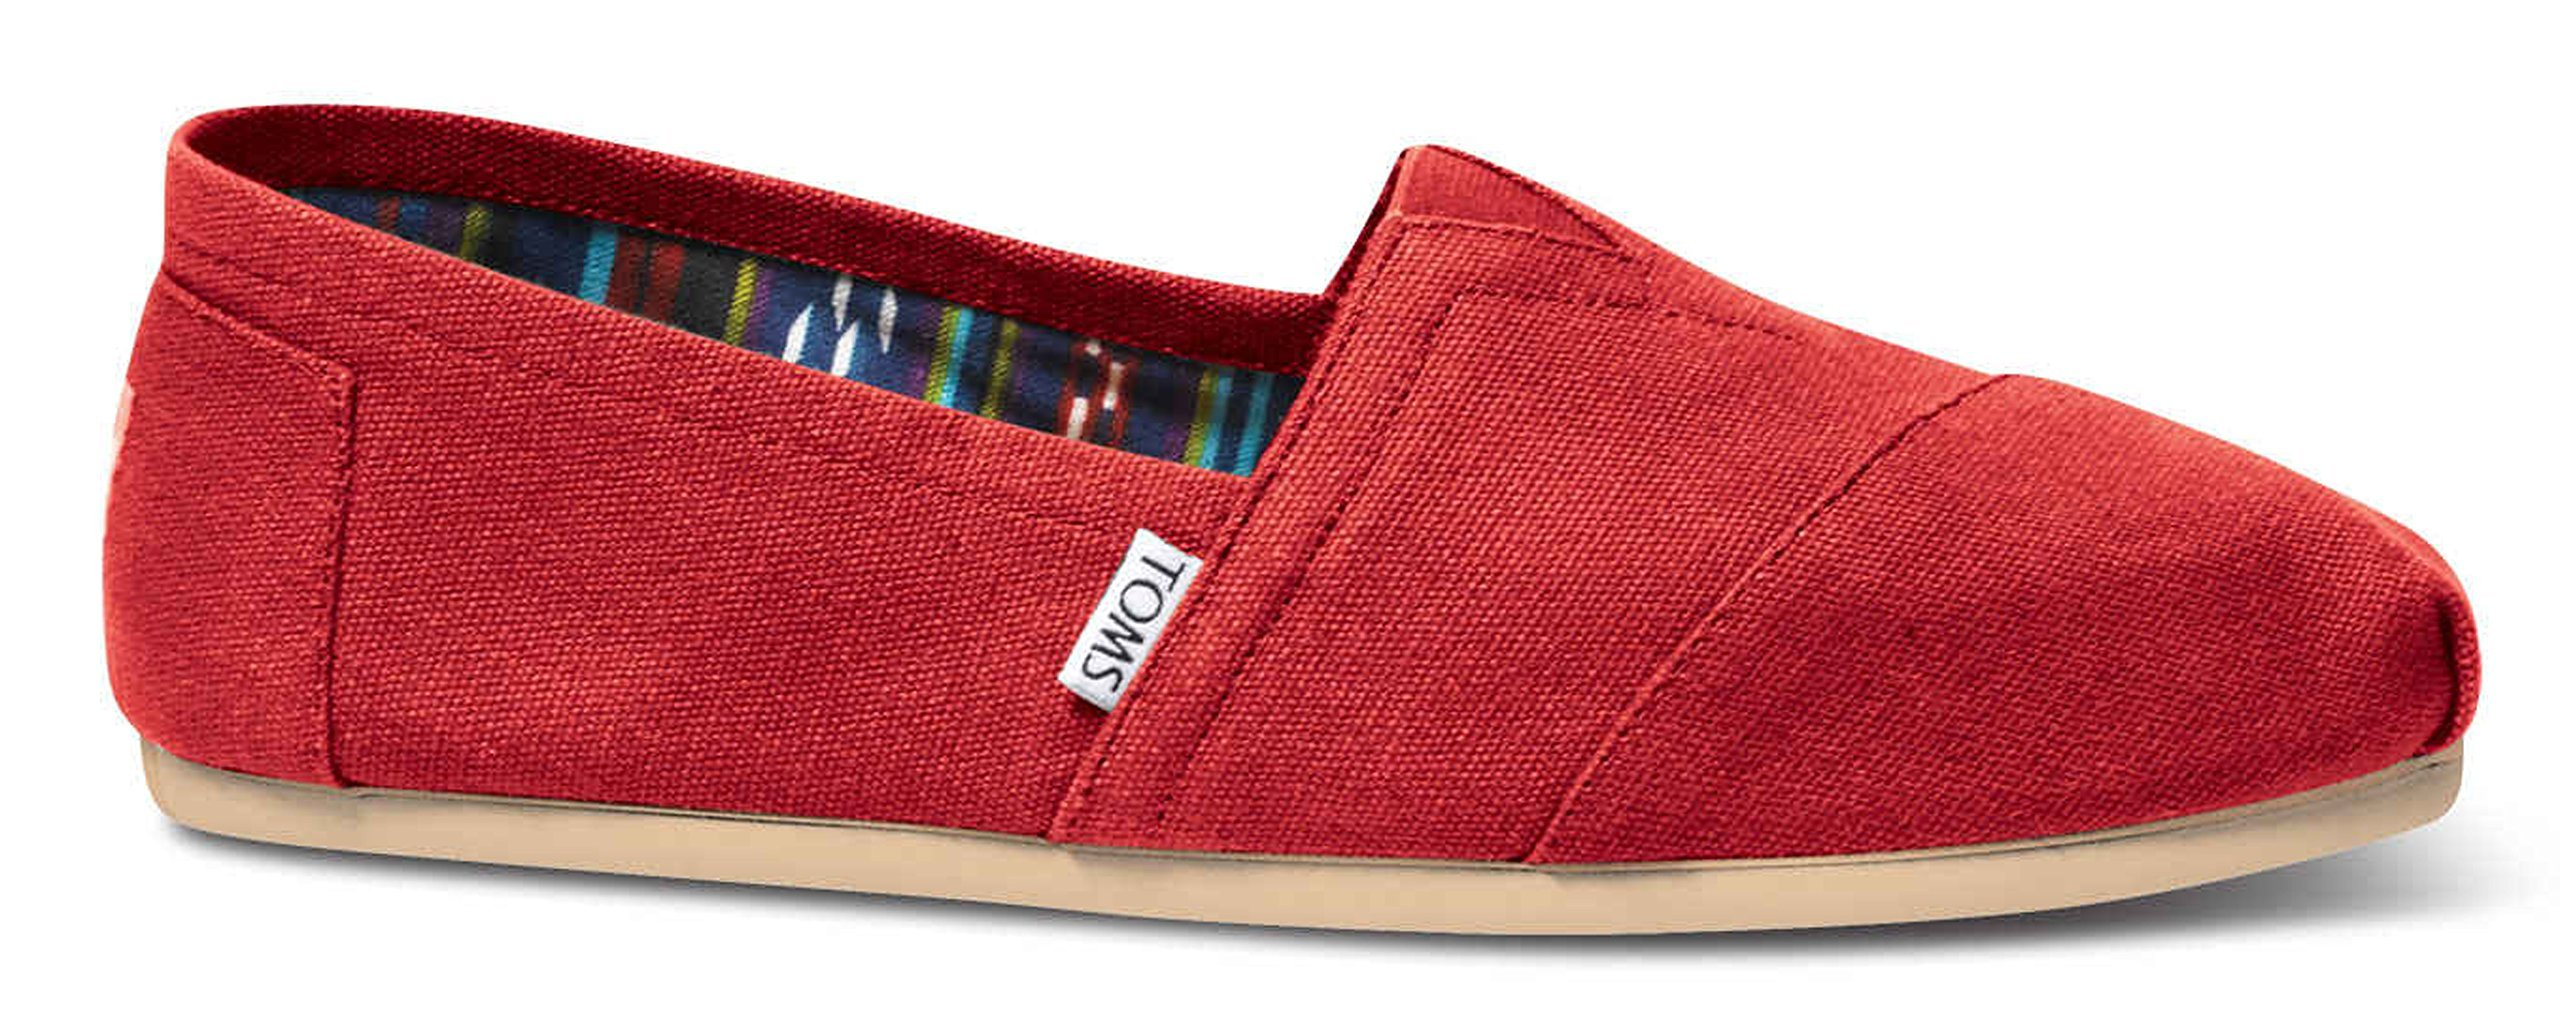 TOMS Men's Classic Canvas Slip On Red 8 D(M) US